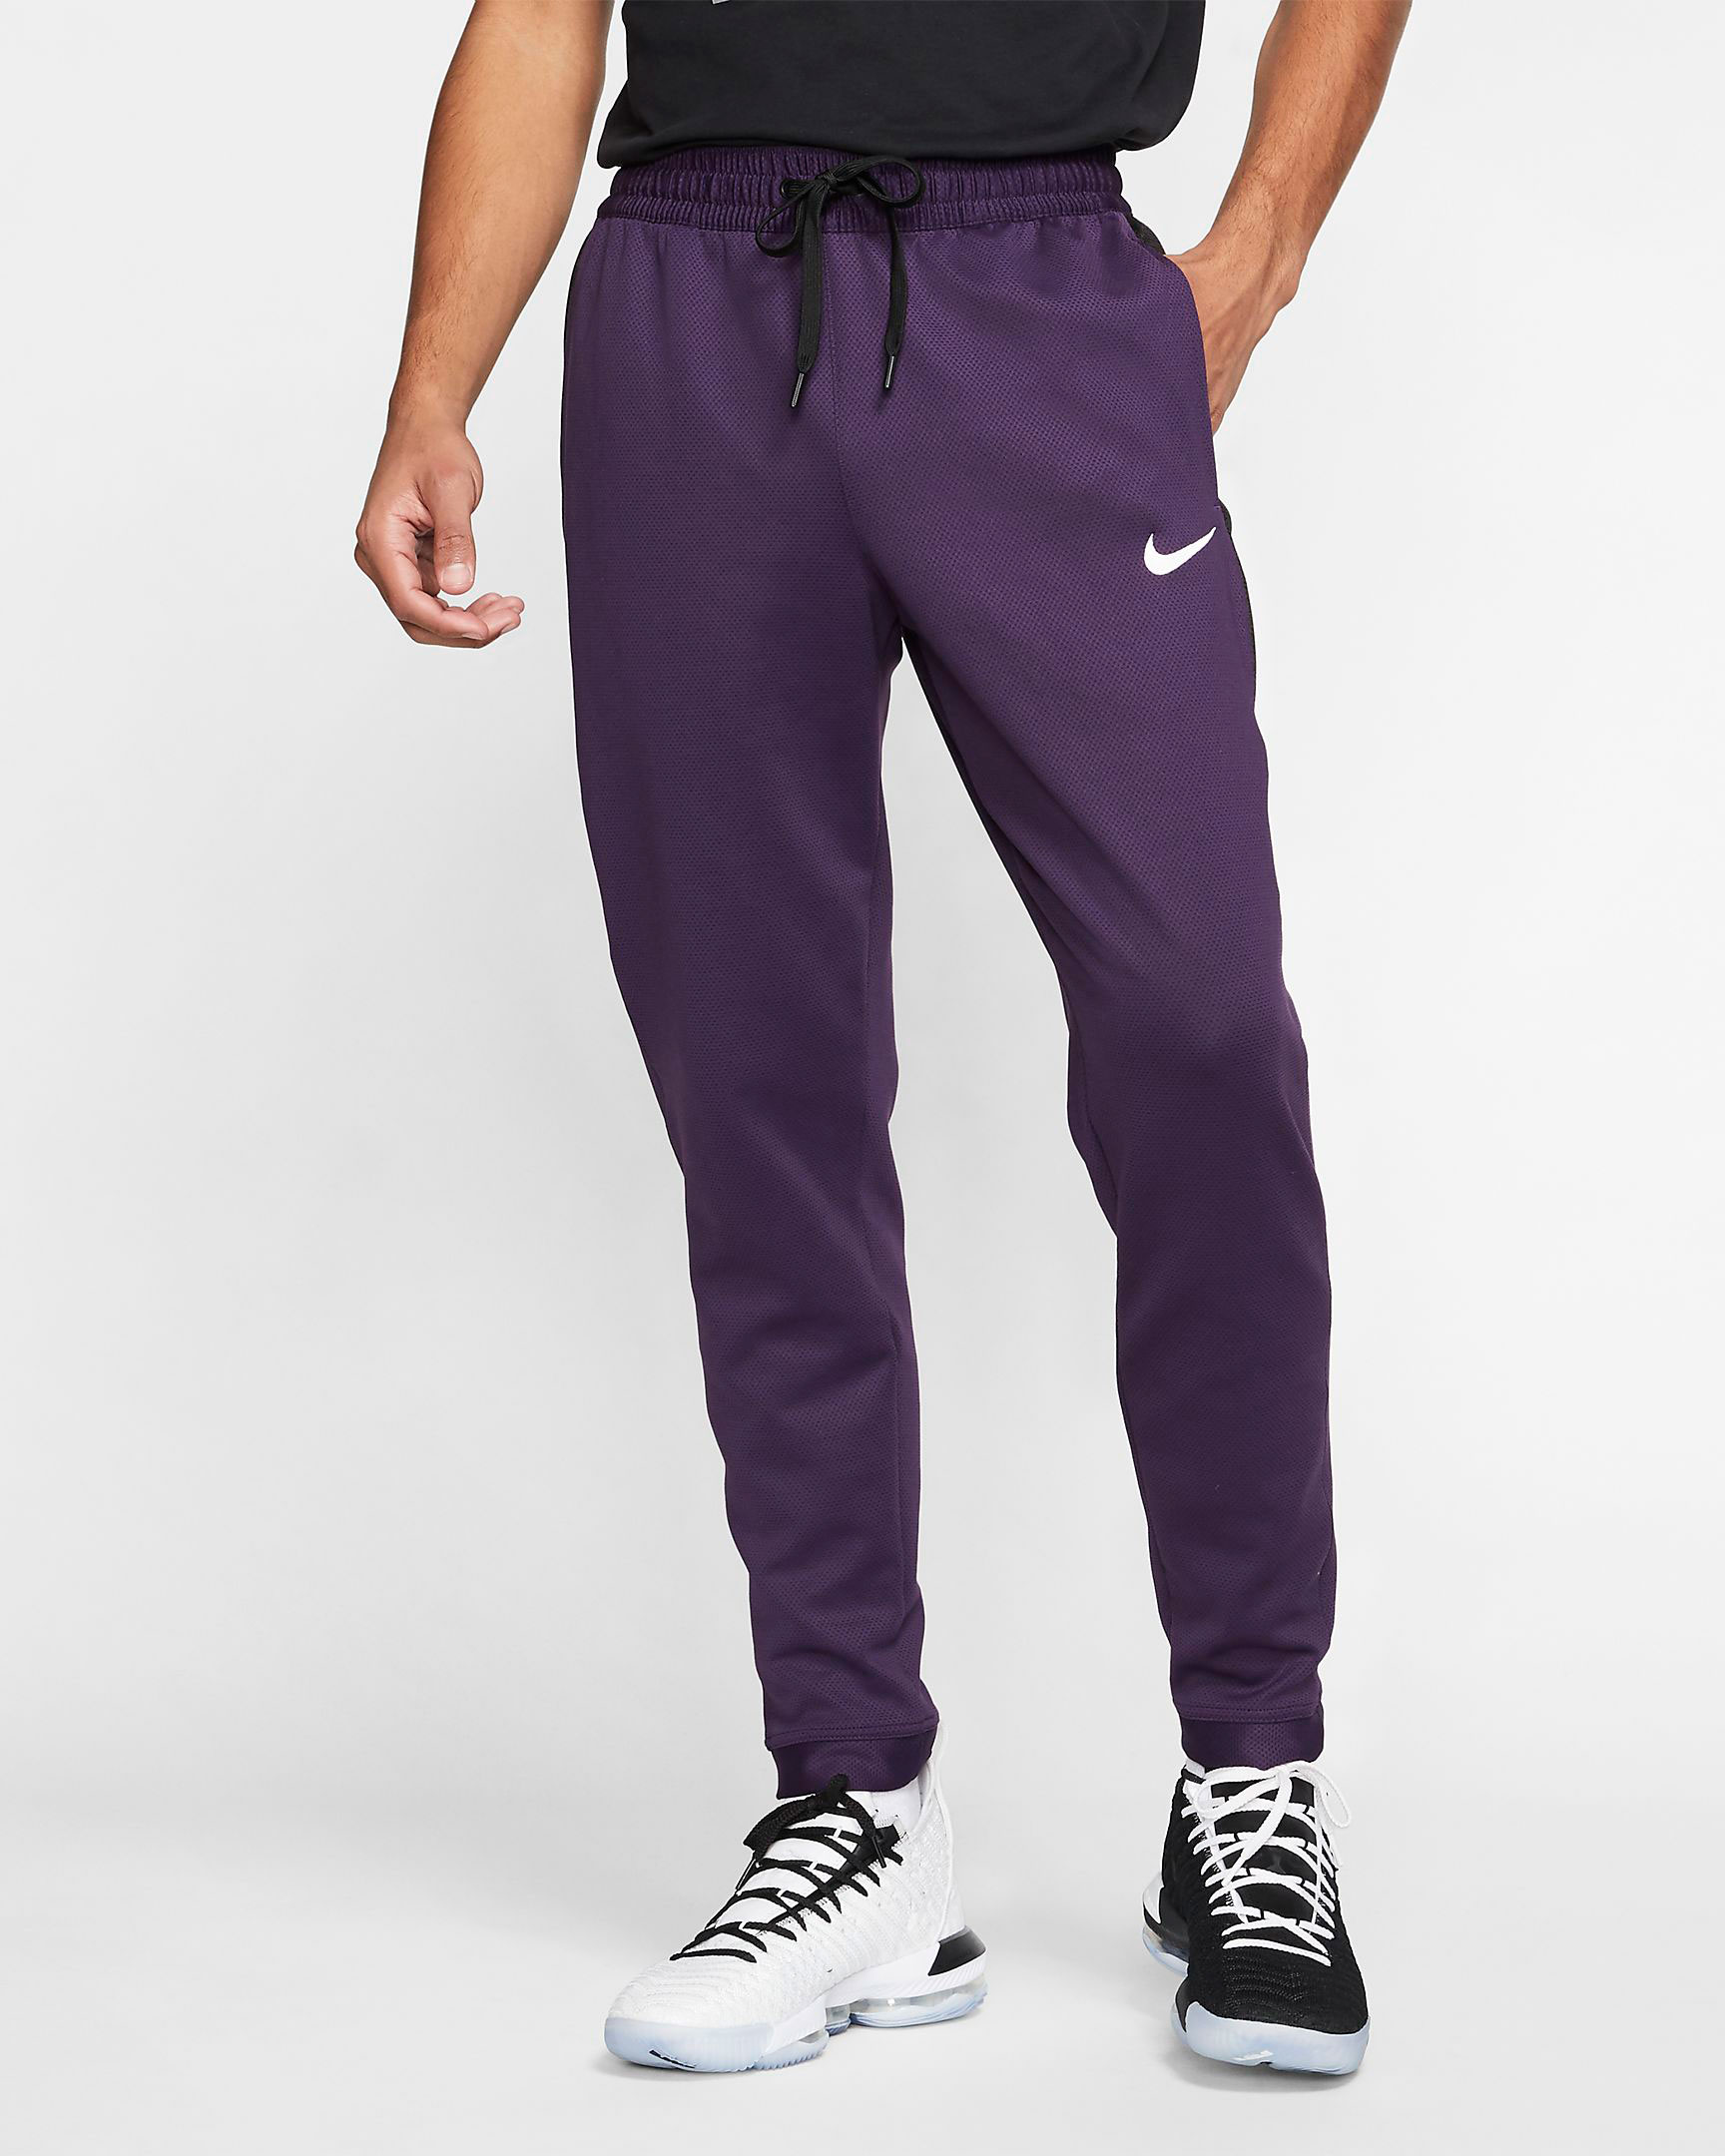 nike-basketball-grand-purple-showtime-pants